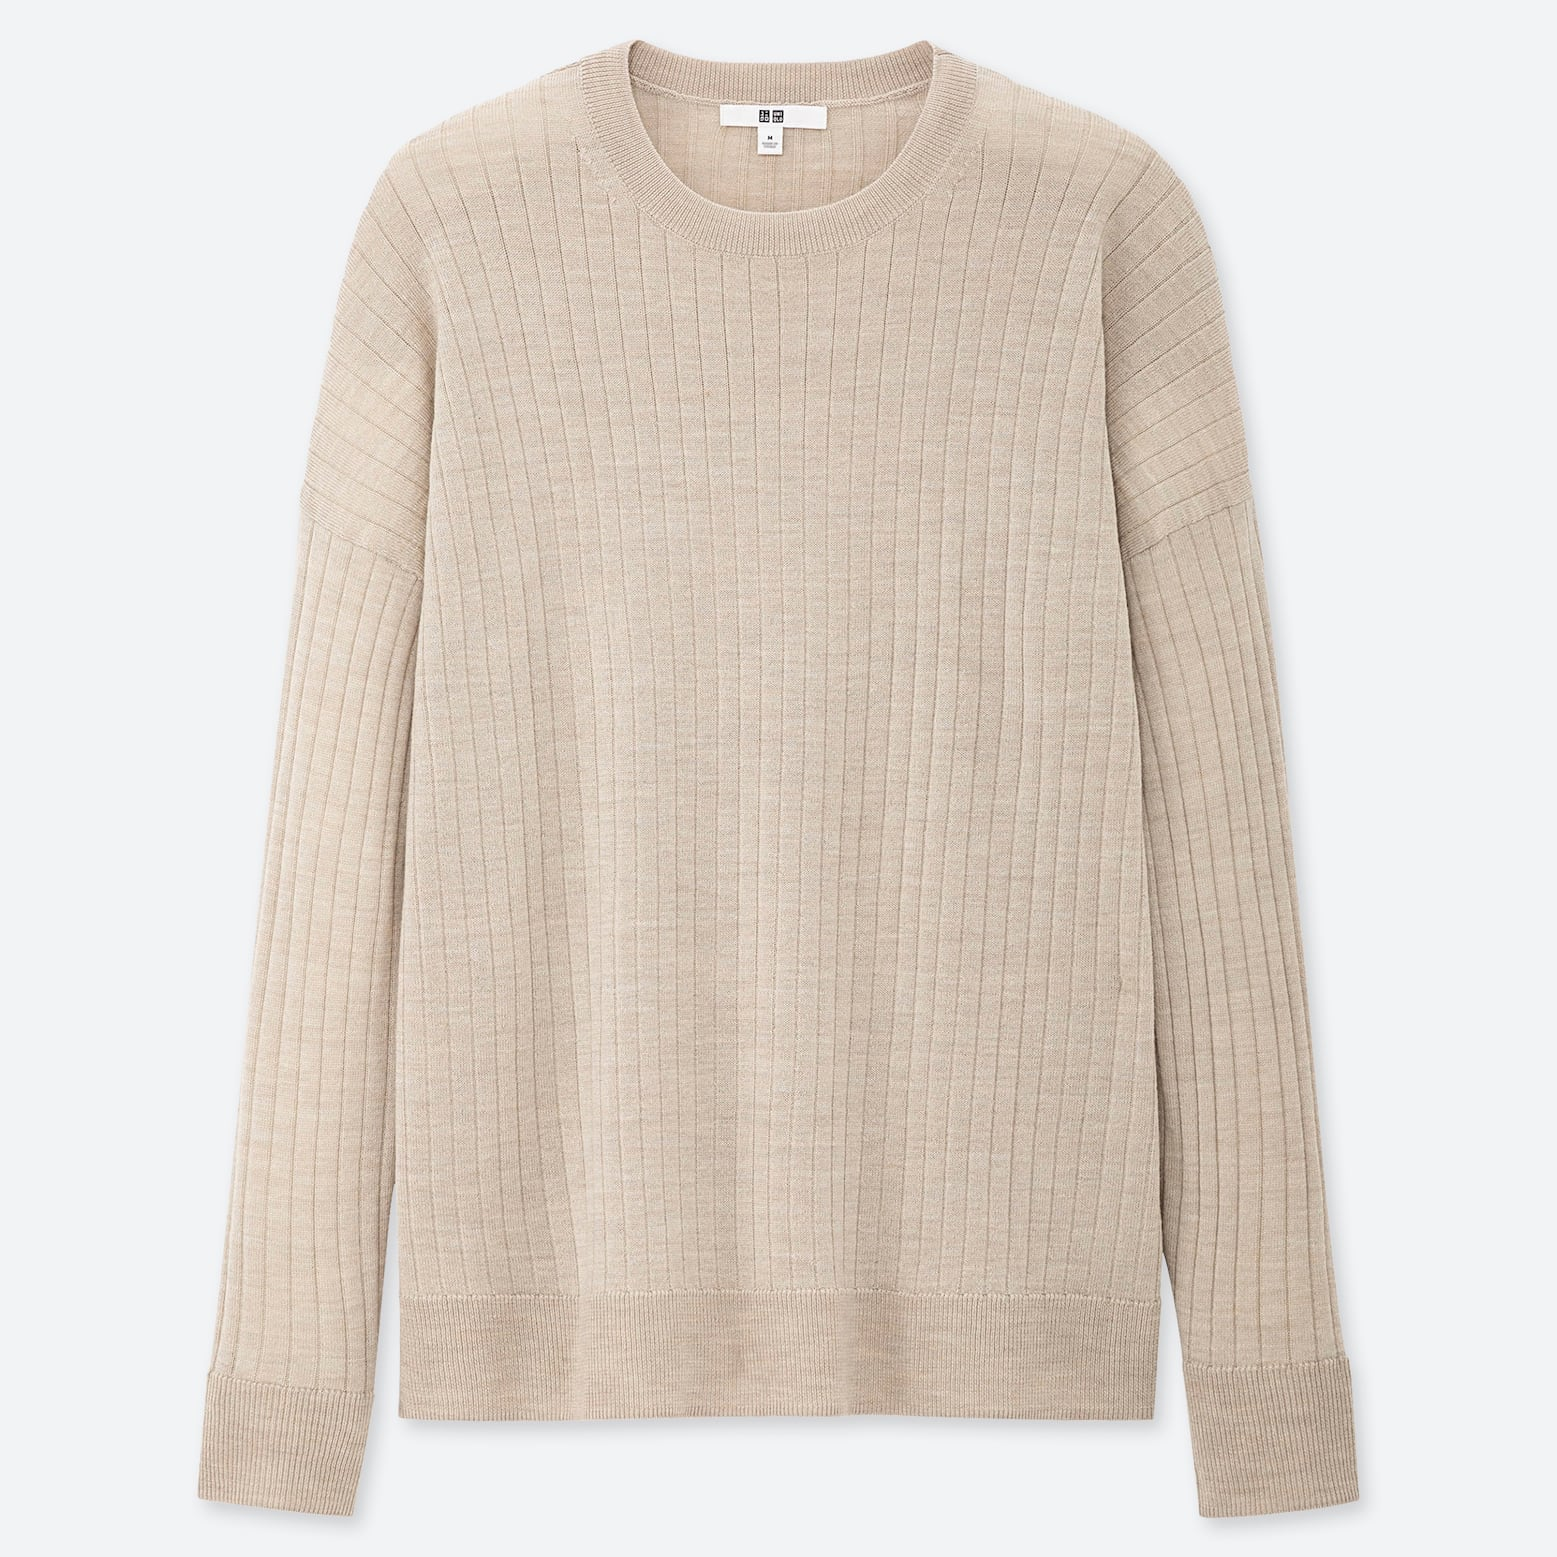 Merino Blend Ribbed Oversized Crew Neck Sweater by Uniqlo